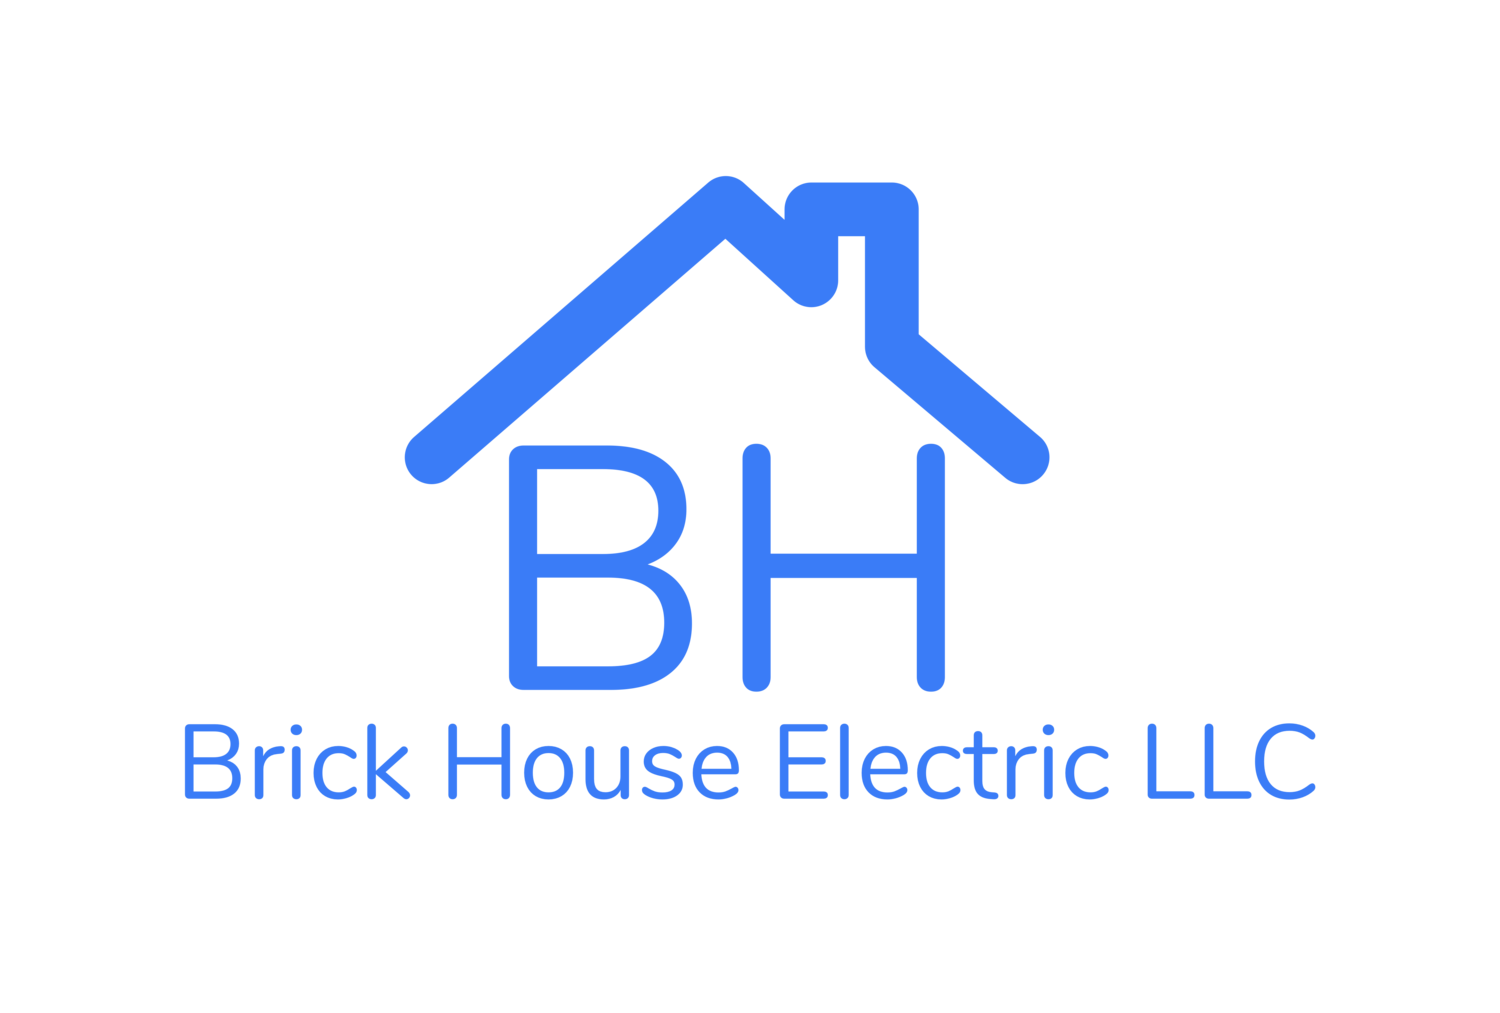 Brick House Electric